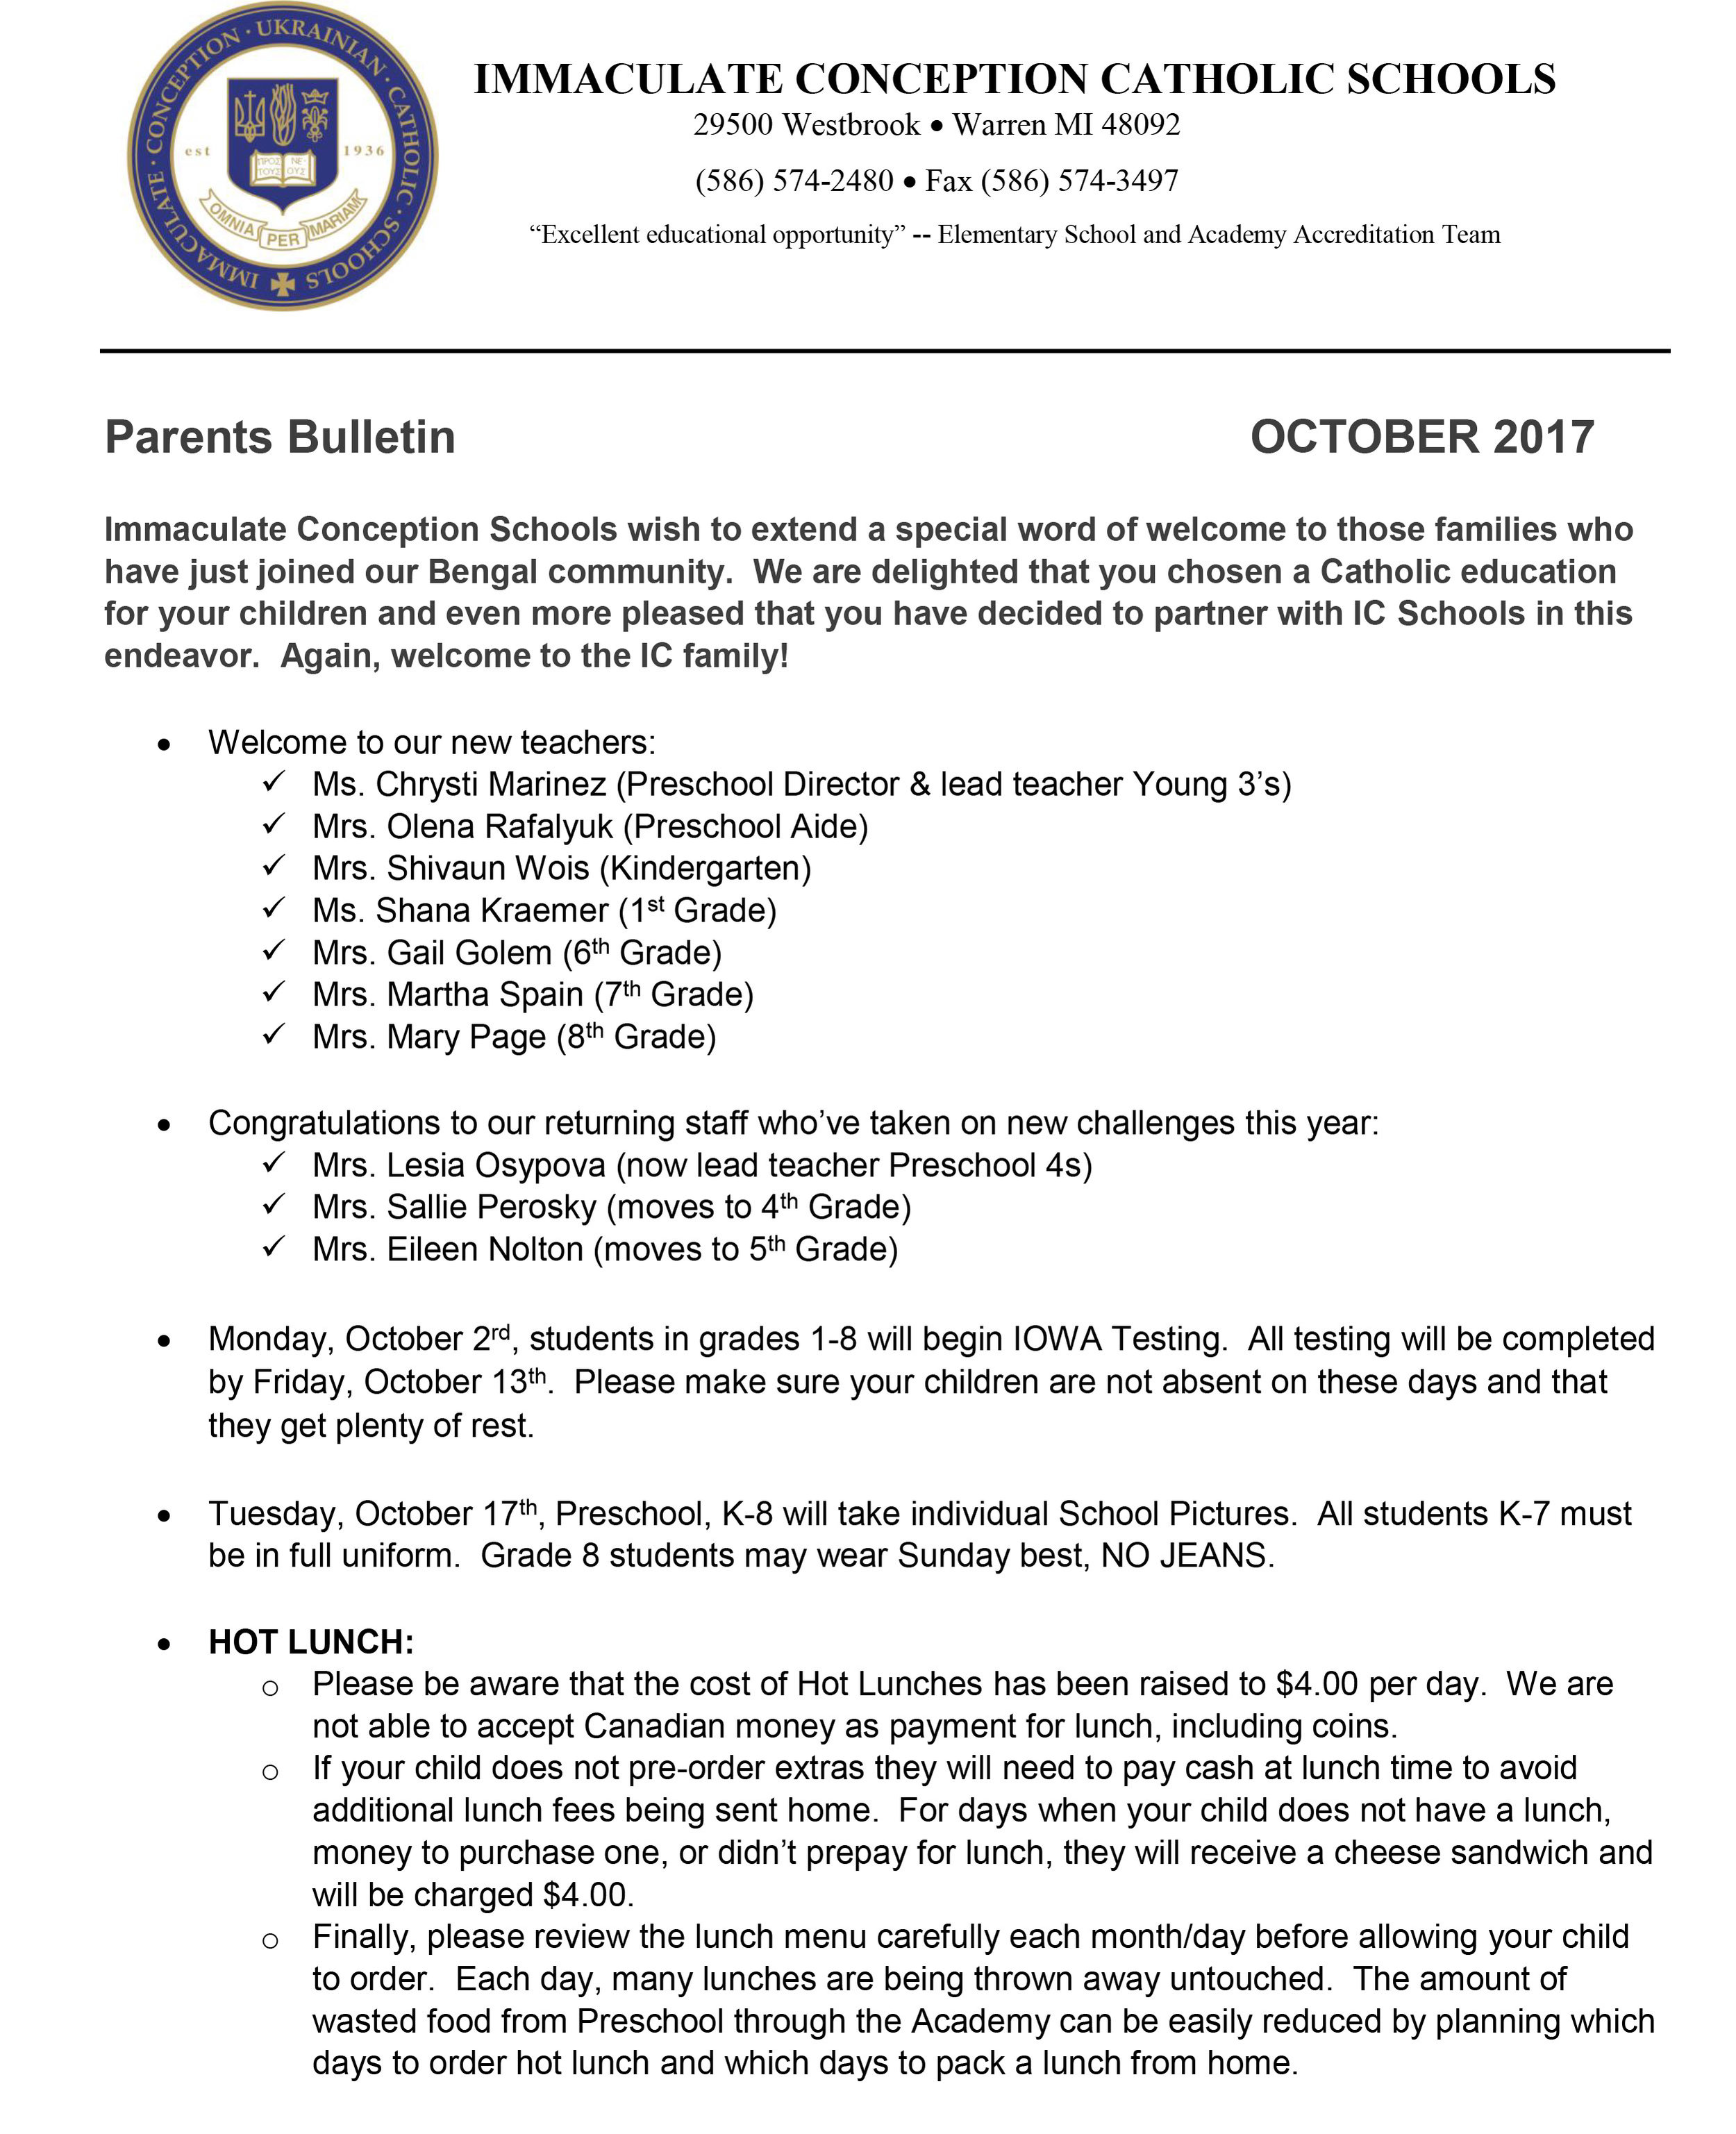 Oct 2017 Bulletin plain text-1.jpg